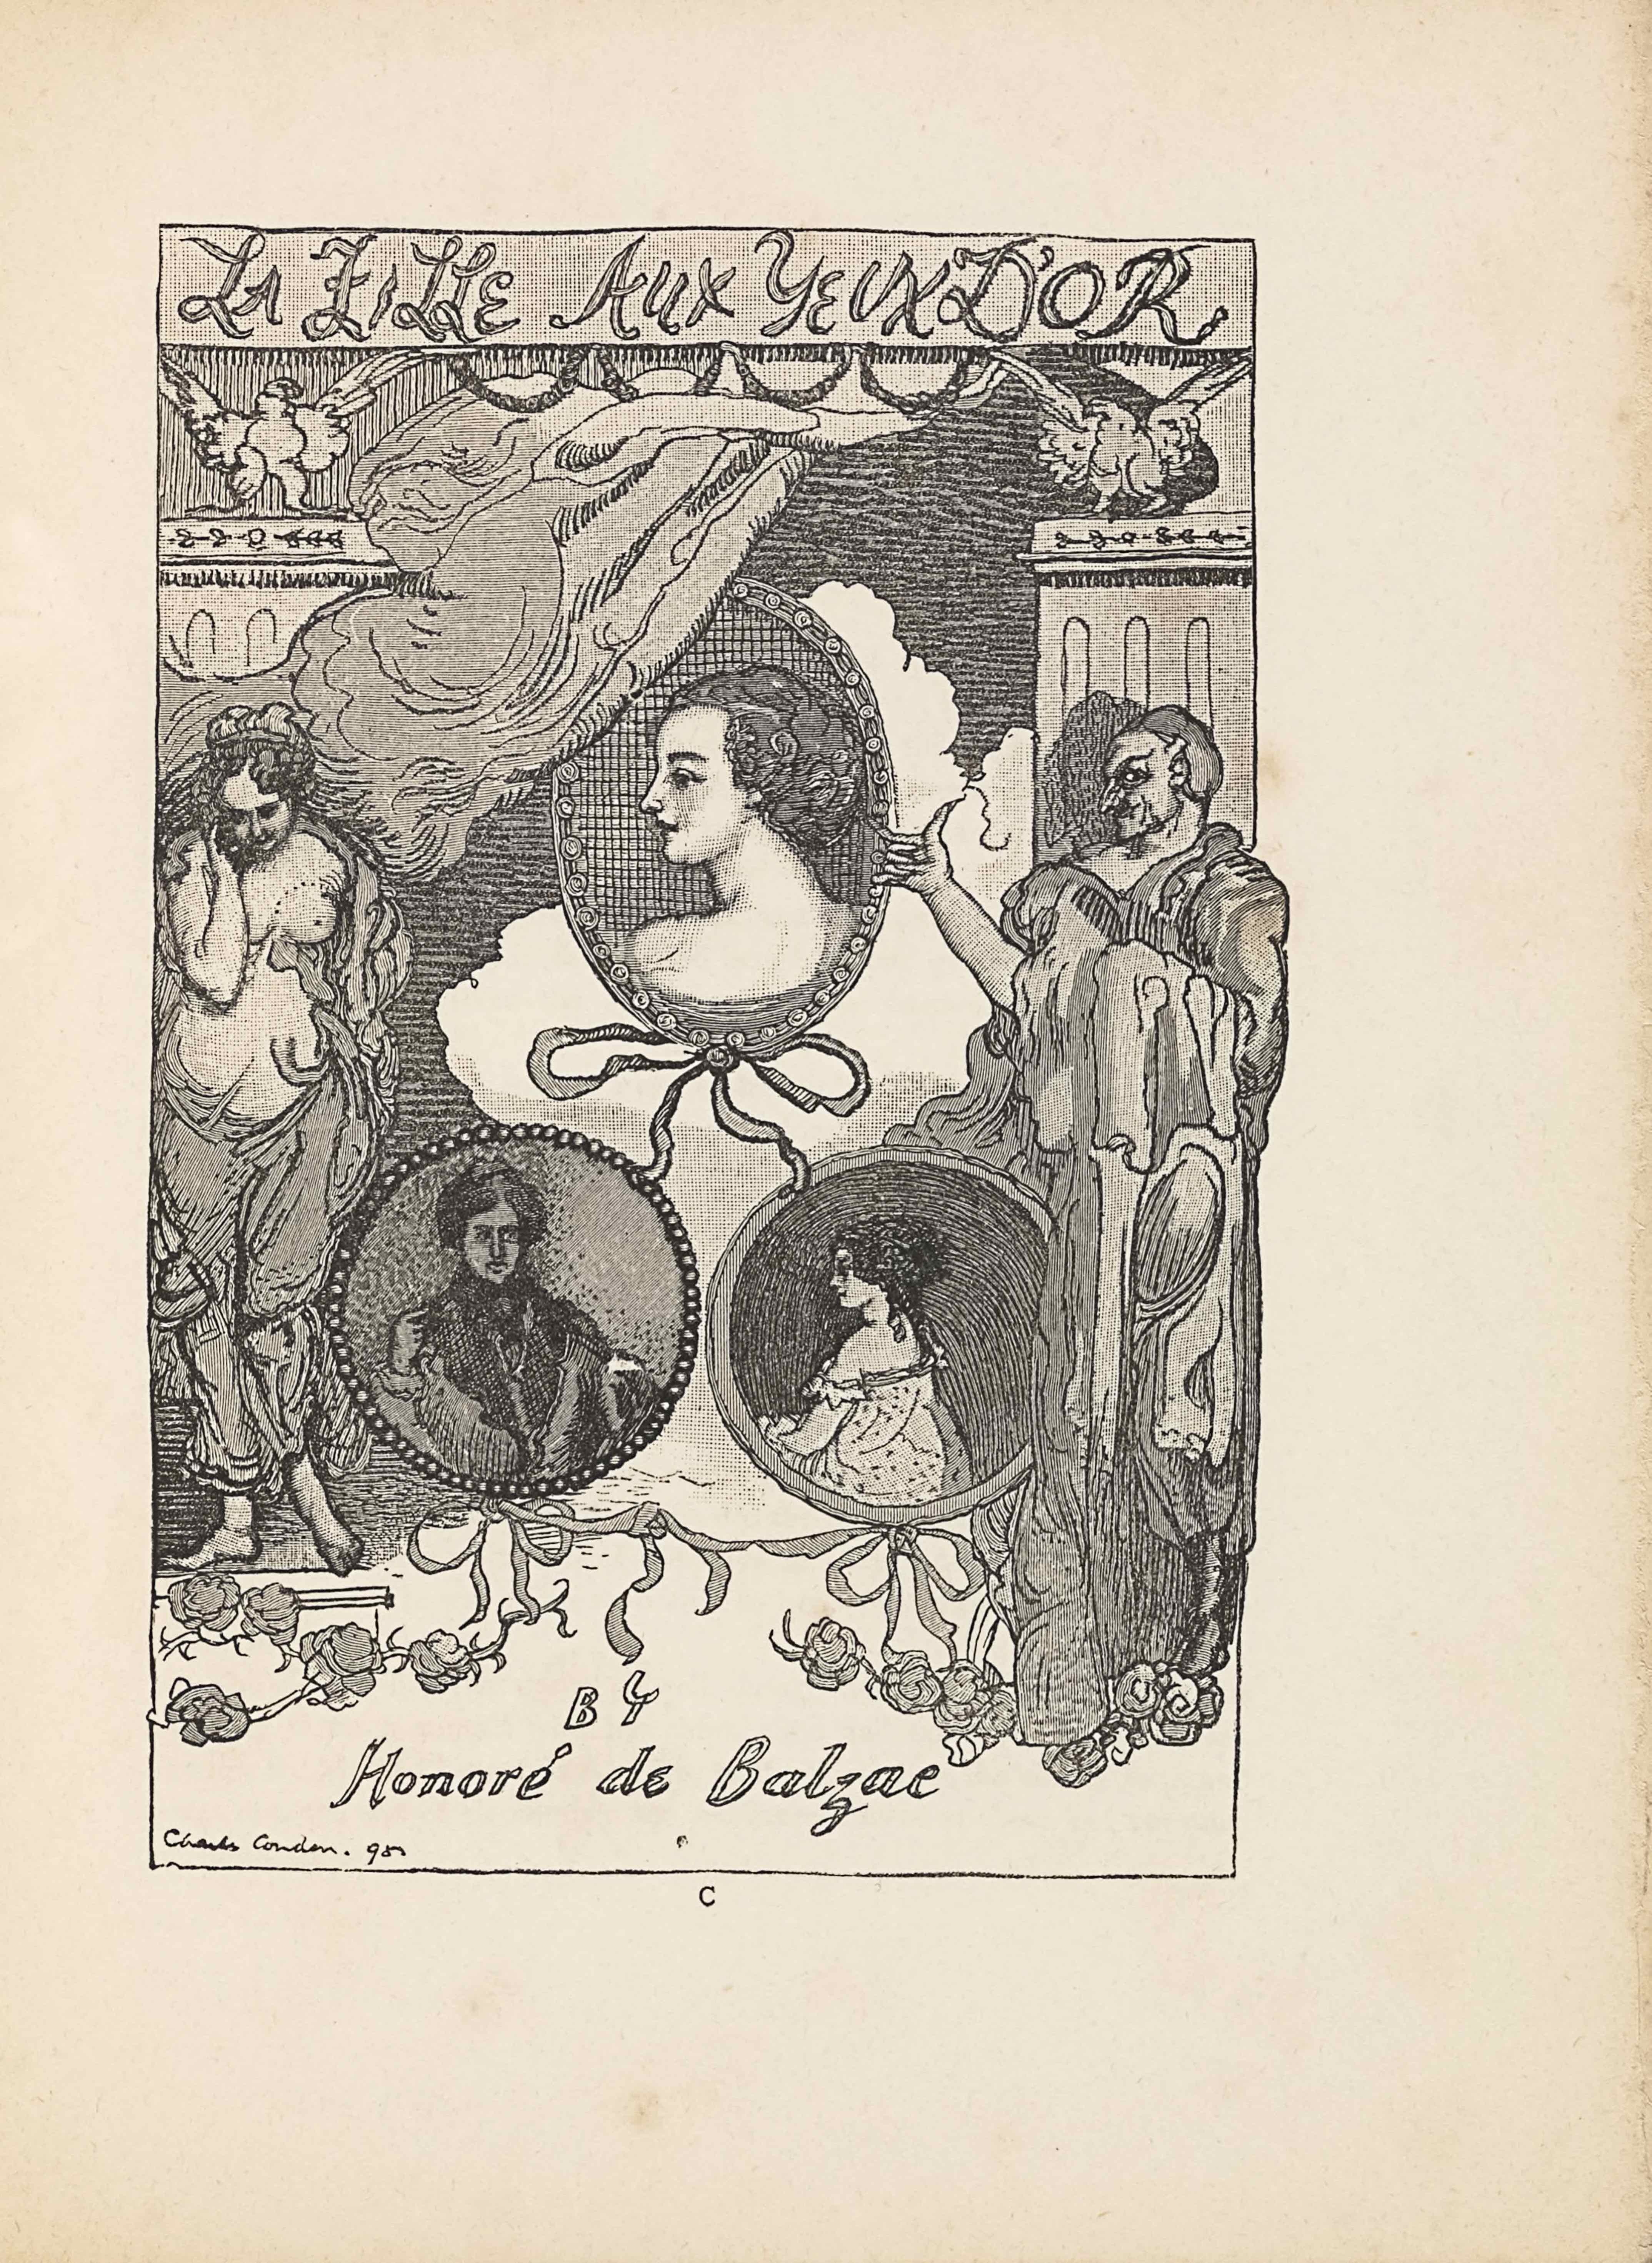 """The image, a wood engraving of a crayon drawing by Charles Conder, is in portrait orientation. It is the frontispiece to Balzac's La Fille Aux Yeux D'Or. This title, """"LA FILLE AUX YEUX D'OR, appears in a banner with hand-lettered caps at the top edge. The text """"BY [caps] // Honore de Balzac"""" is hand-lettered, centred, at the bottom. In the bottom left corner of the page is the artist's signature and date: """"Charles Conder. 98.""""Between this publishing information are three cameo portraits suspended in cameos between two pillars fronted with allegorical figures. The two pillars rise to just below the line underscoring the title, leaving room for a falcon to sit atop each pillar. The falcons have their wings spread and their bodies facing the viewer, with their heads turned to face into the page towards each other. In the space on the upper page between the falcons and tops of the two pillars is a stream of cloudy smoke blowing from the centre of the separation line down and to the left, just in front of the left pillar. Behind the smoke is a black background made of close horizontal black lines. In the upper centre of the page is the top of the three medallion portraits. It is oval shaped and has an image of a woman in profile facing to the left. She is only visible from the shoulders and above, and has short curled hair pulled into an updo hairstyle. There is no clothing visible on her bare shoulders. The ornamental frame has a large bow hanging from the bottom edge. Behind the frame and down slightly on the page is another puff of smoke, but this one is much brighter and whiter than the one above. On the left edge of the page, standing in front of a pillar, is a half-clothed female figure. The woman is standing and facing the viewer, but her face is turned down to look at the ground. She has a nude upper body with material wrapped around her legs and behind her back. She has her right hand lifted up to cup the right side of her face. Her hair is curly and short. Her """